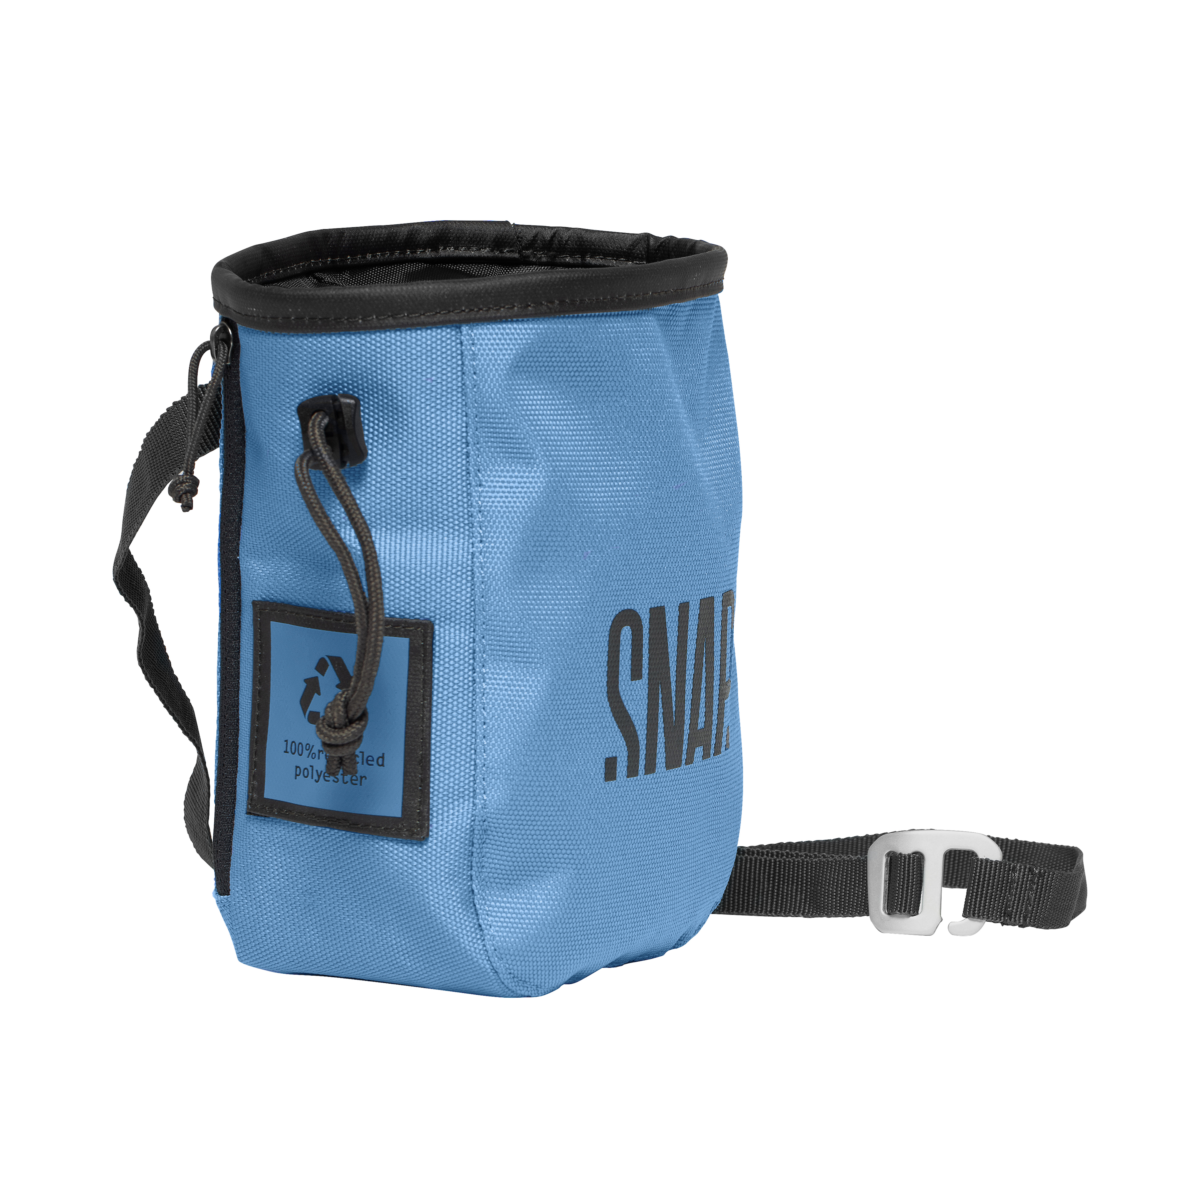 chalk pocket zip chalk bag rock climbing